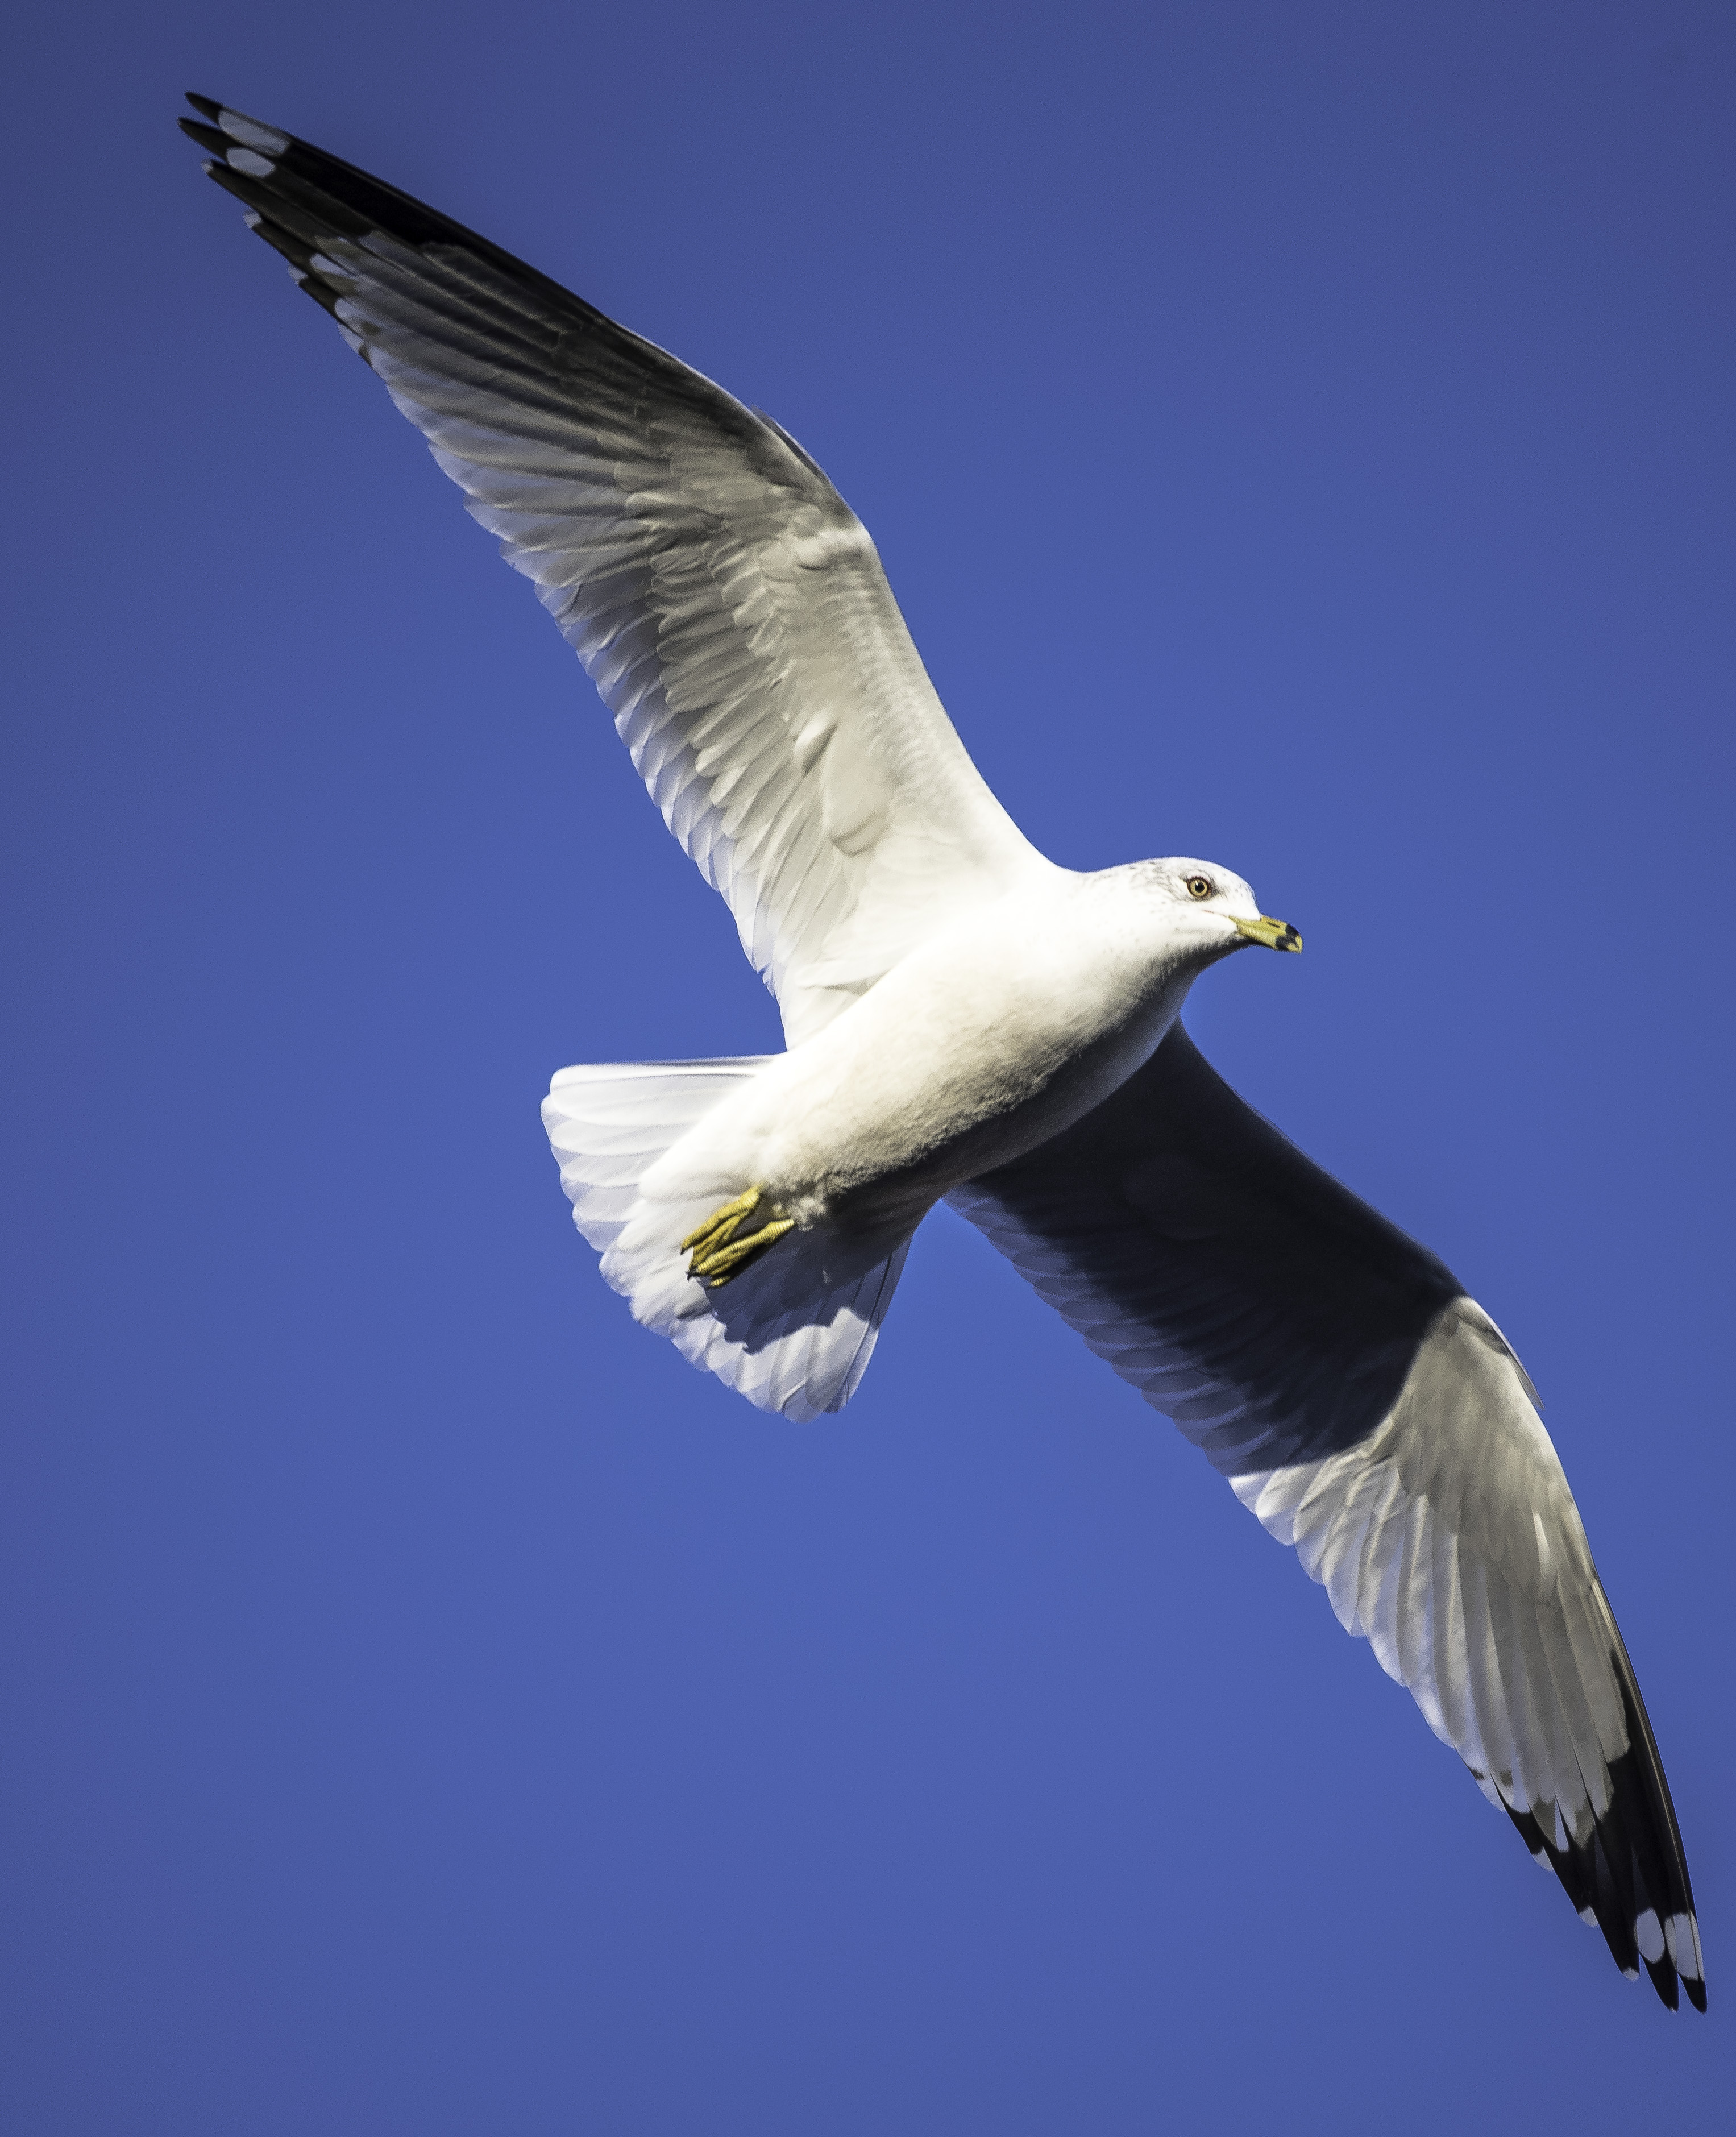 close up seagull in flight full wingspan image free stock photo